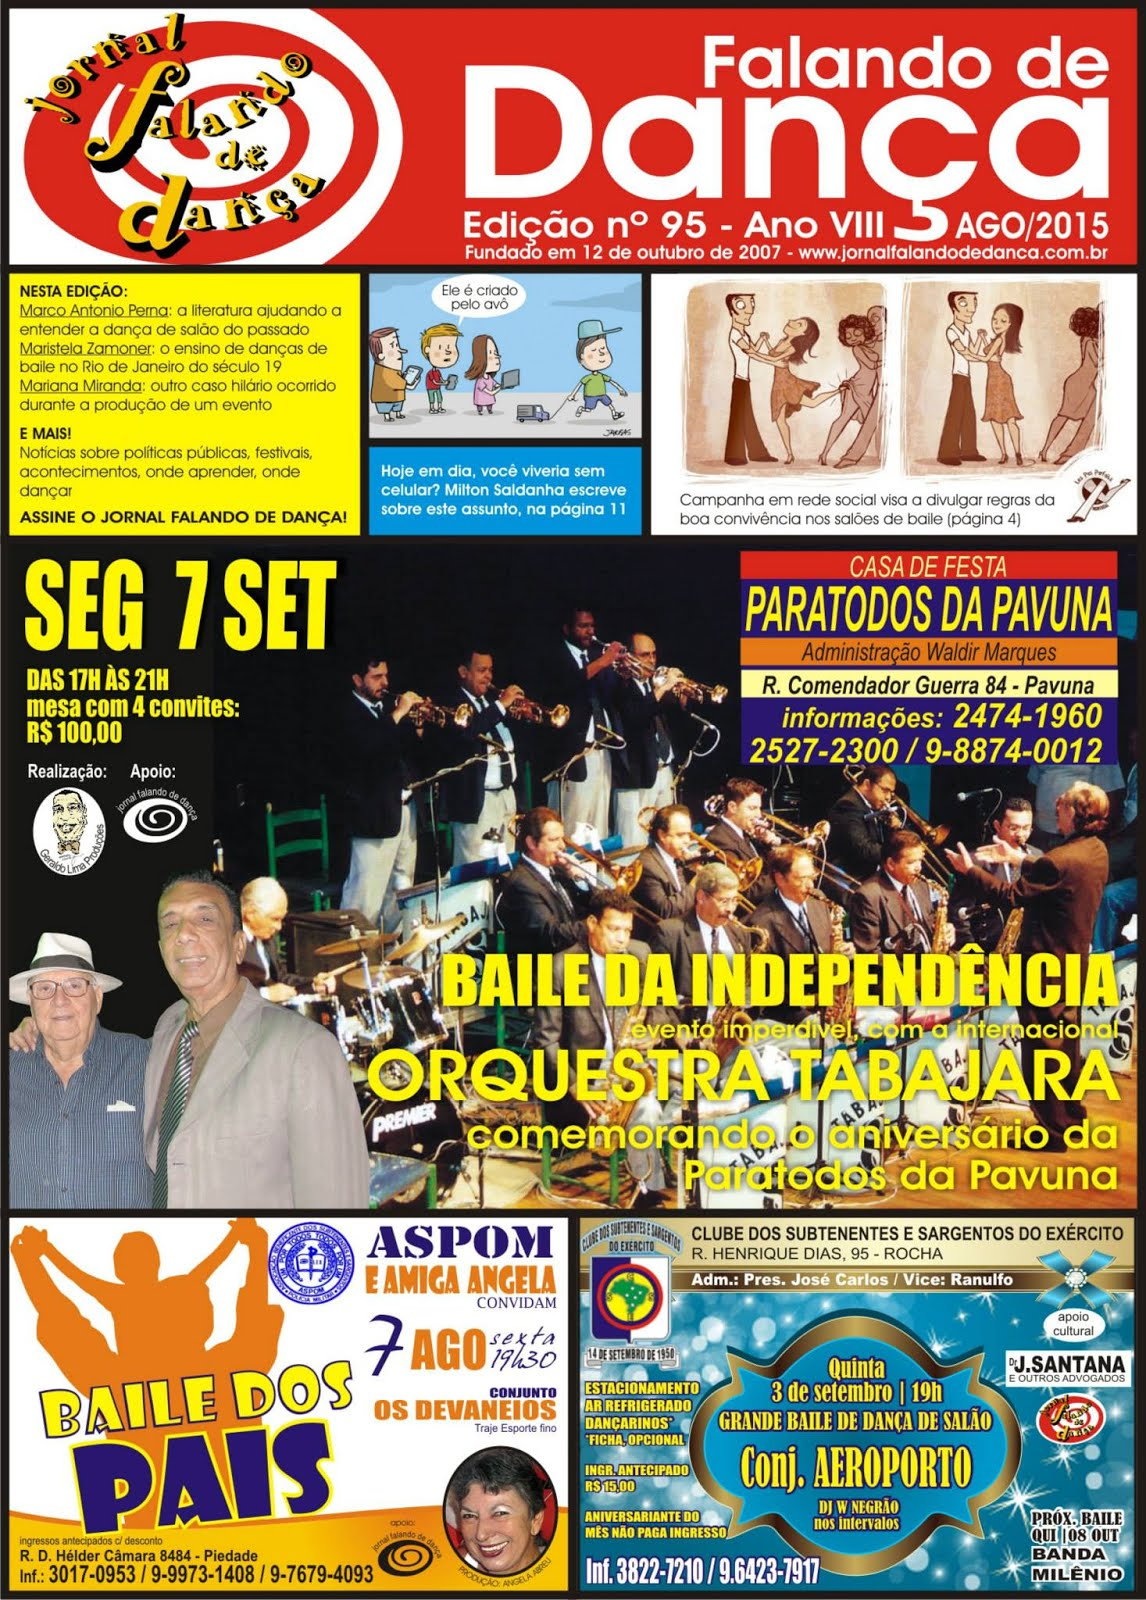 Leia on line a ed 95 (Agosto/2015)